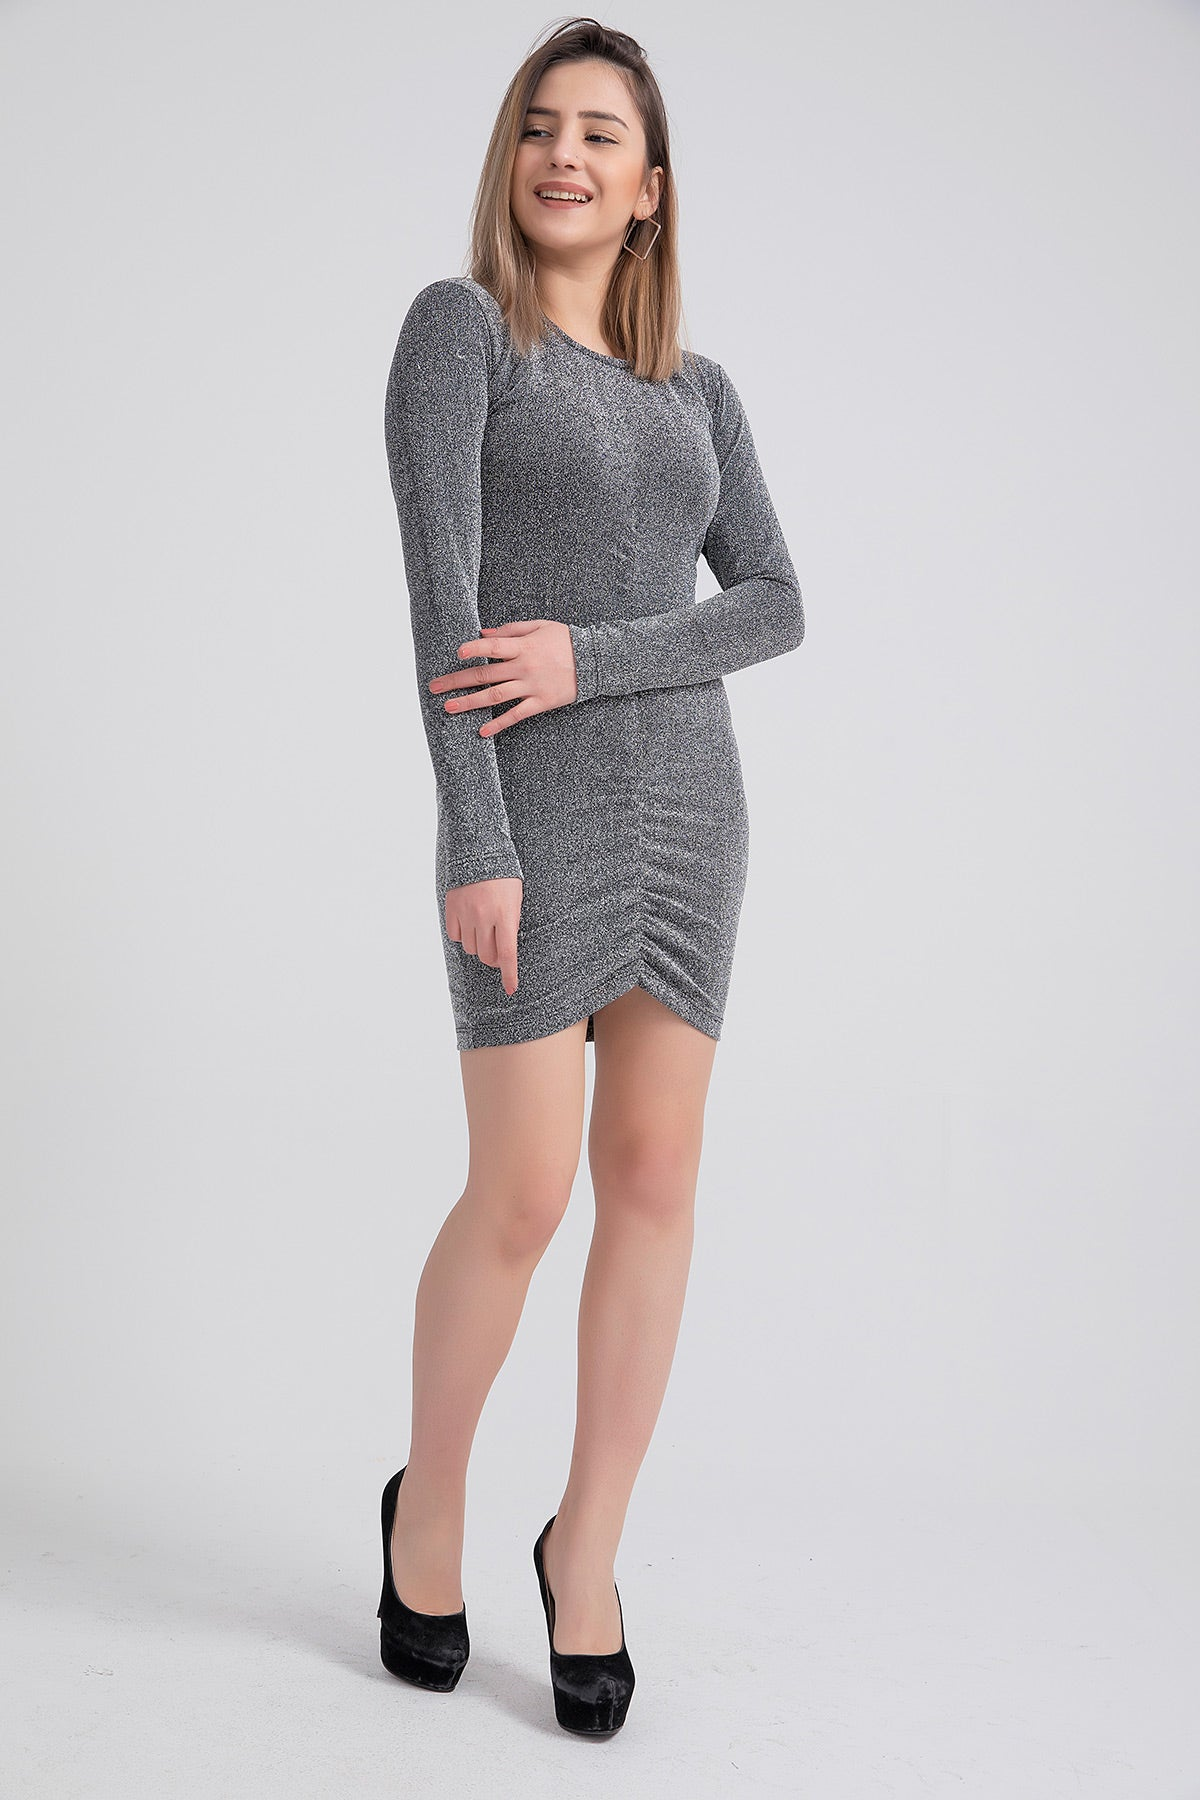 Women's Crew Neck Front Shirred Silver Short Dress